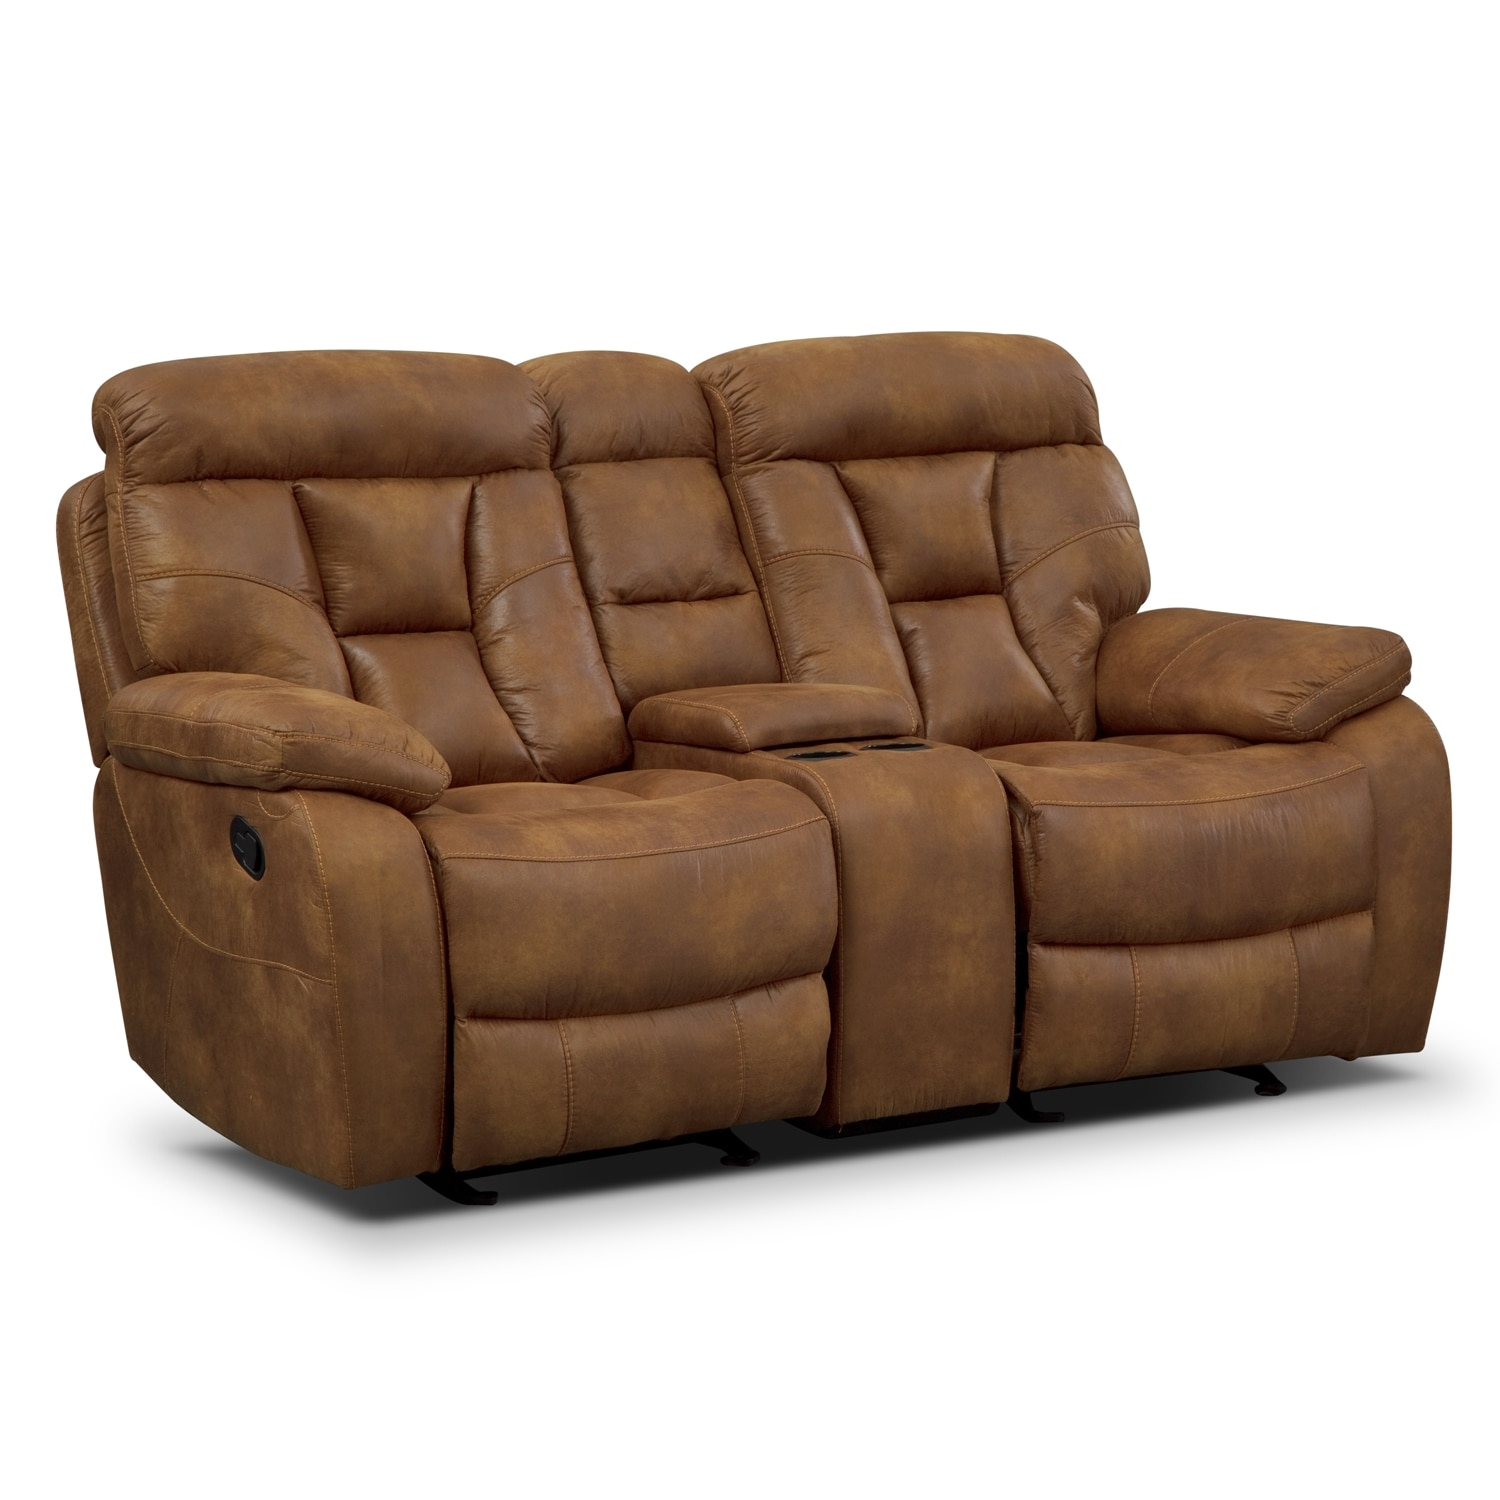 Hurry Up For Your Best Cheap Sofas On Sale: Dakota Reclining Sofa And Glider Loveseat Set